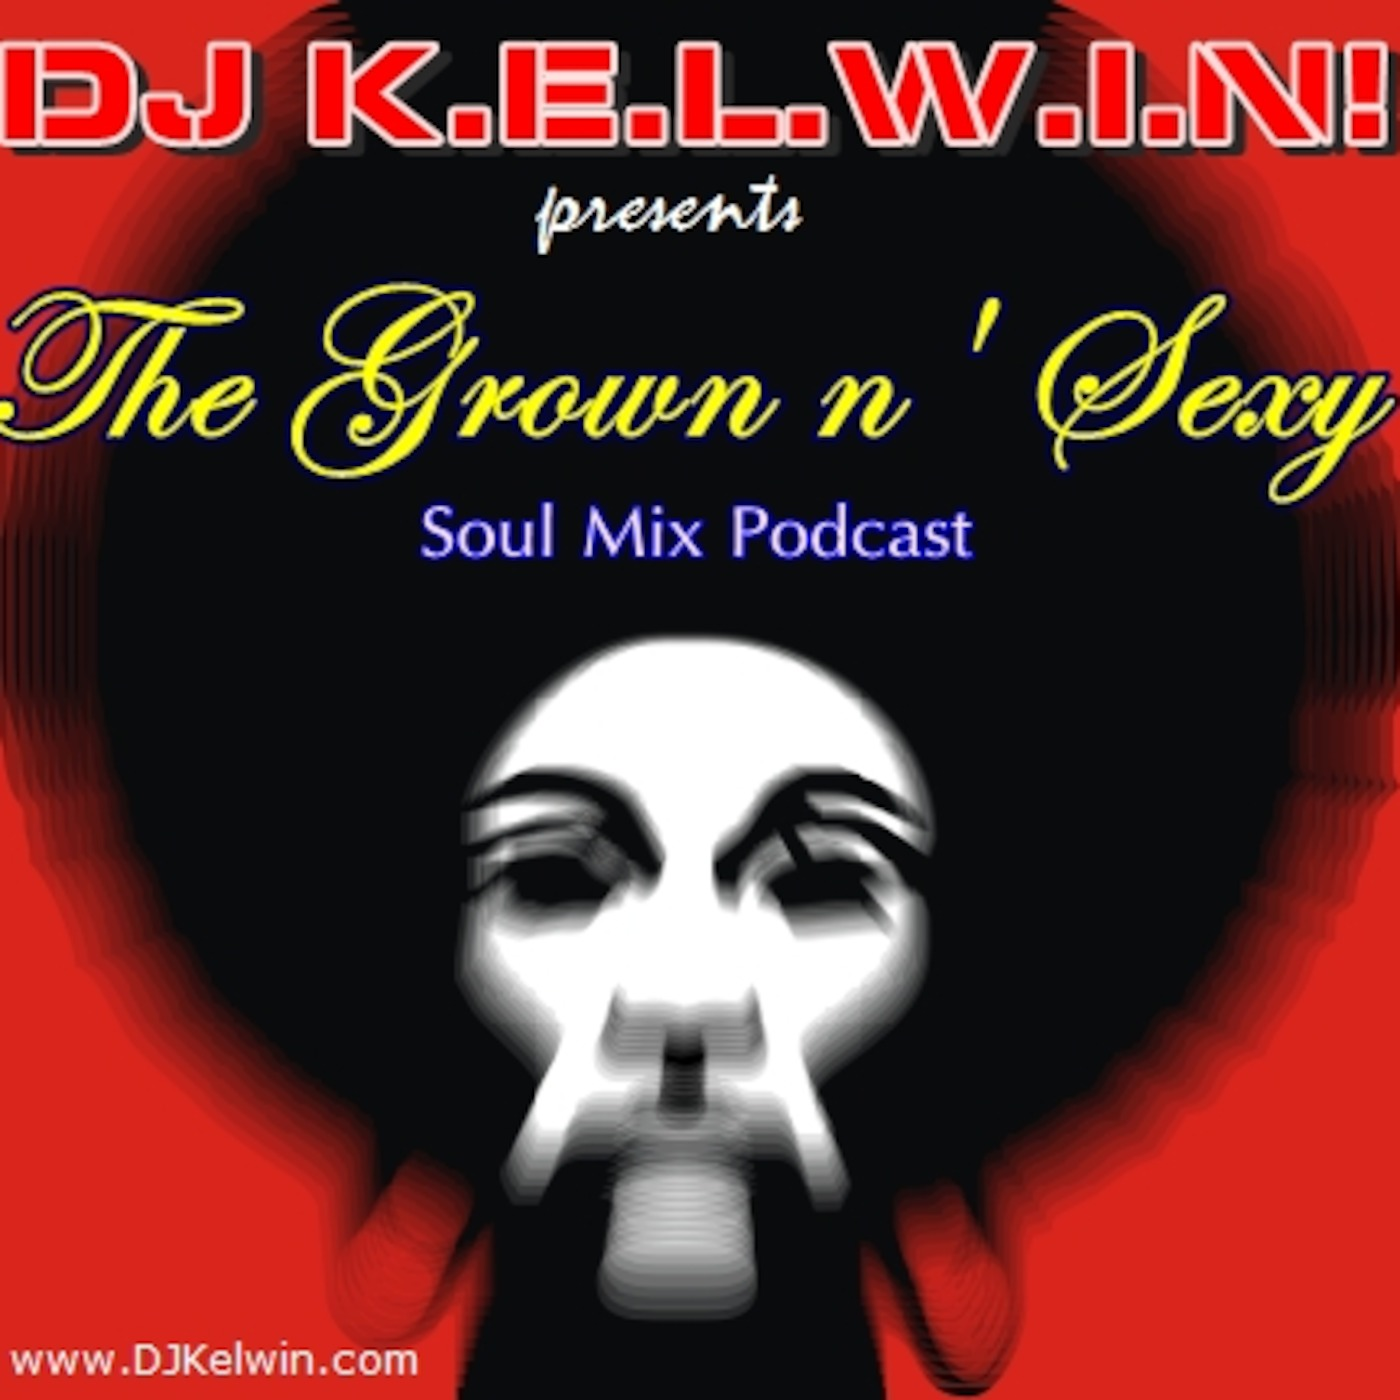 DJ KEL-WIN! GROWN n' SEXY Soul Mix Podcast is BACK!!! - facebook.com/grownnsexysoul